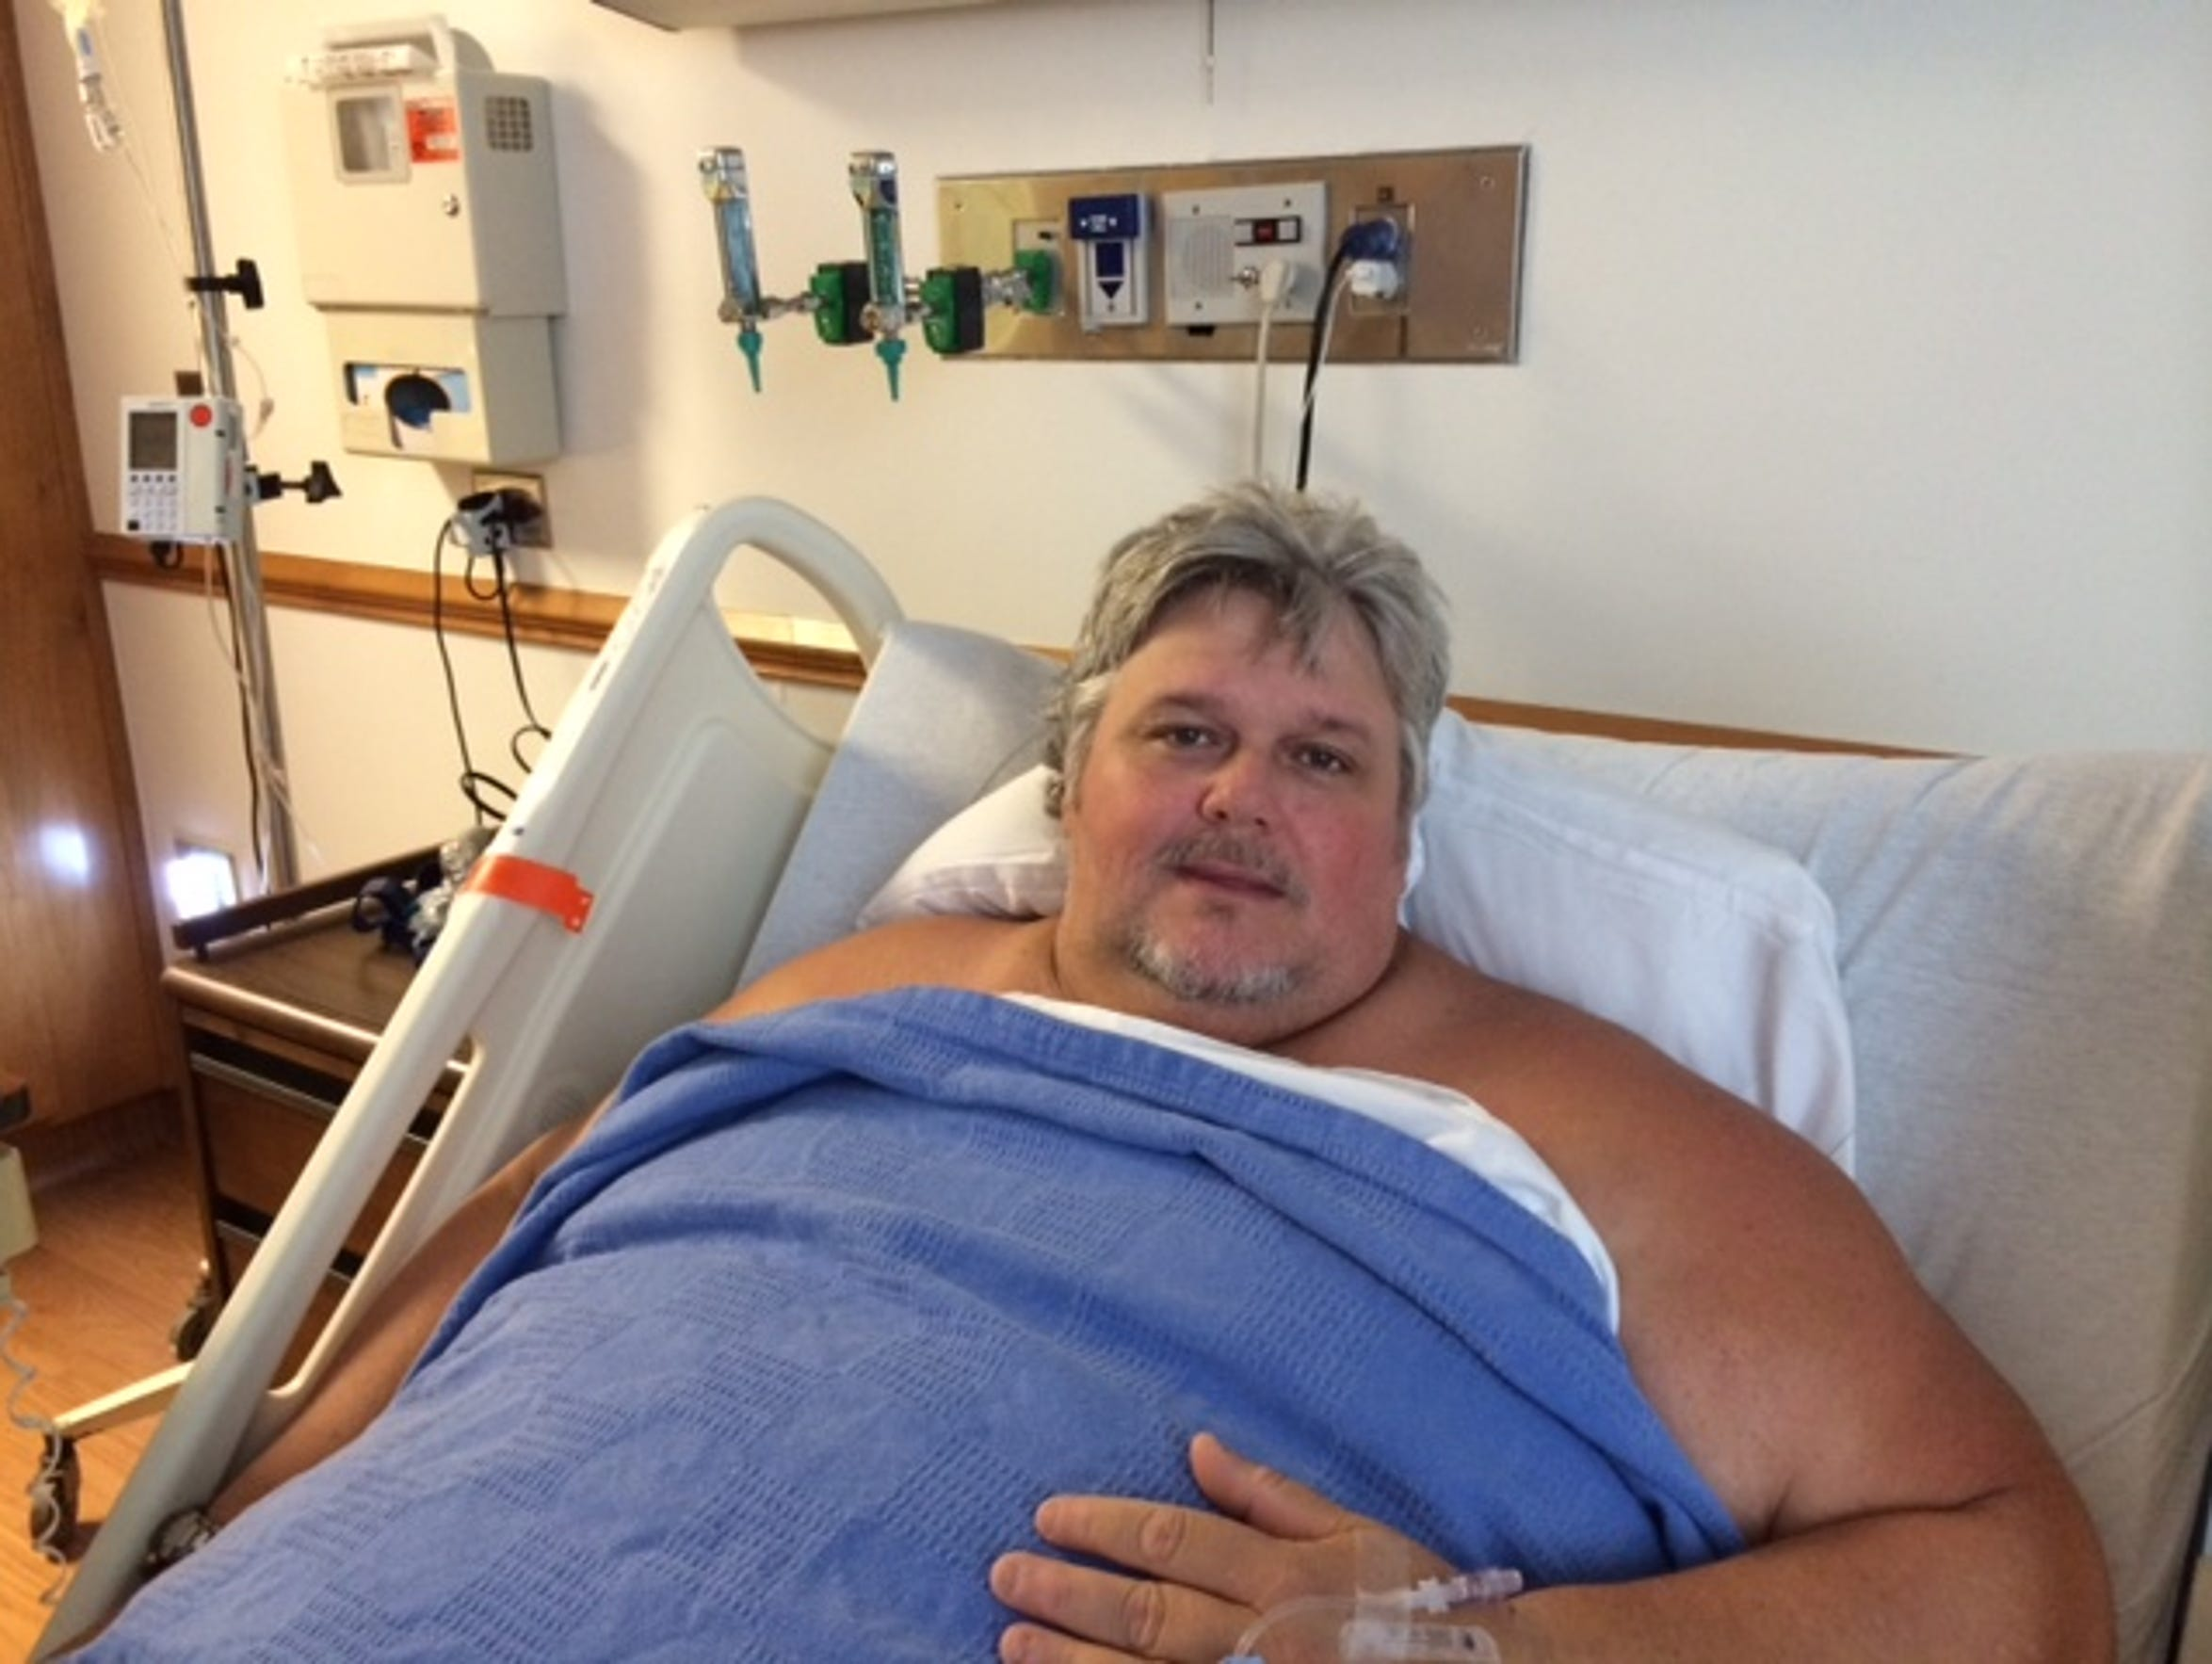 Greg Willoughby, 46, was disoriented from cellulitis